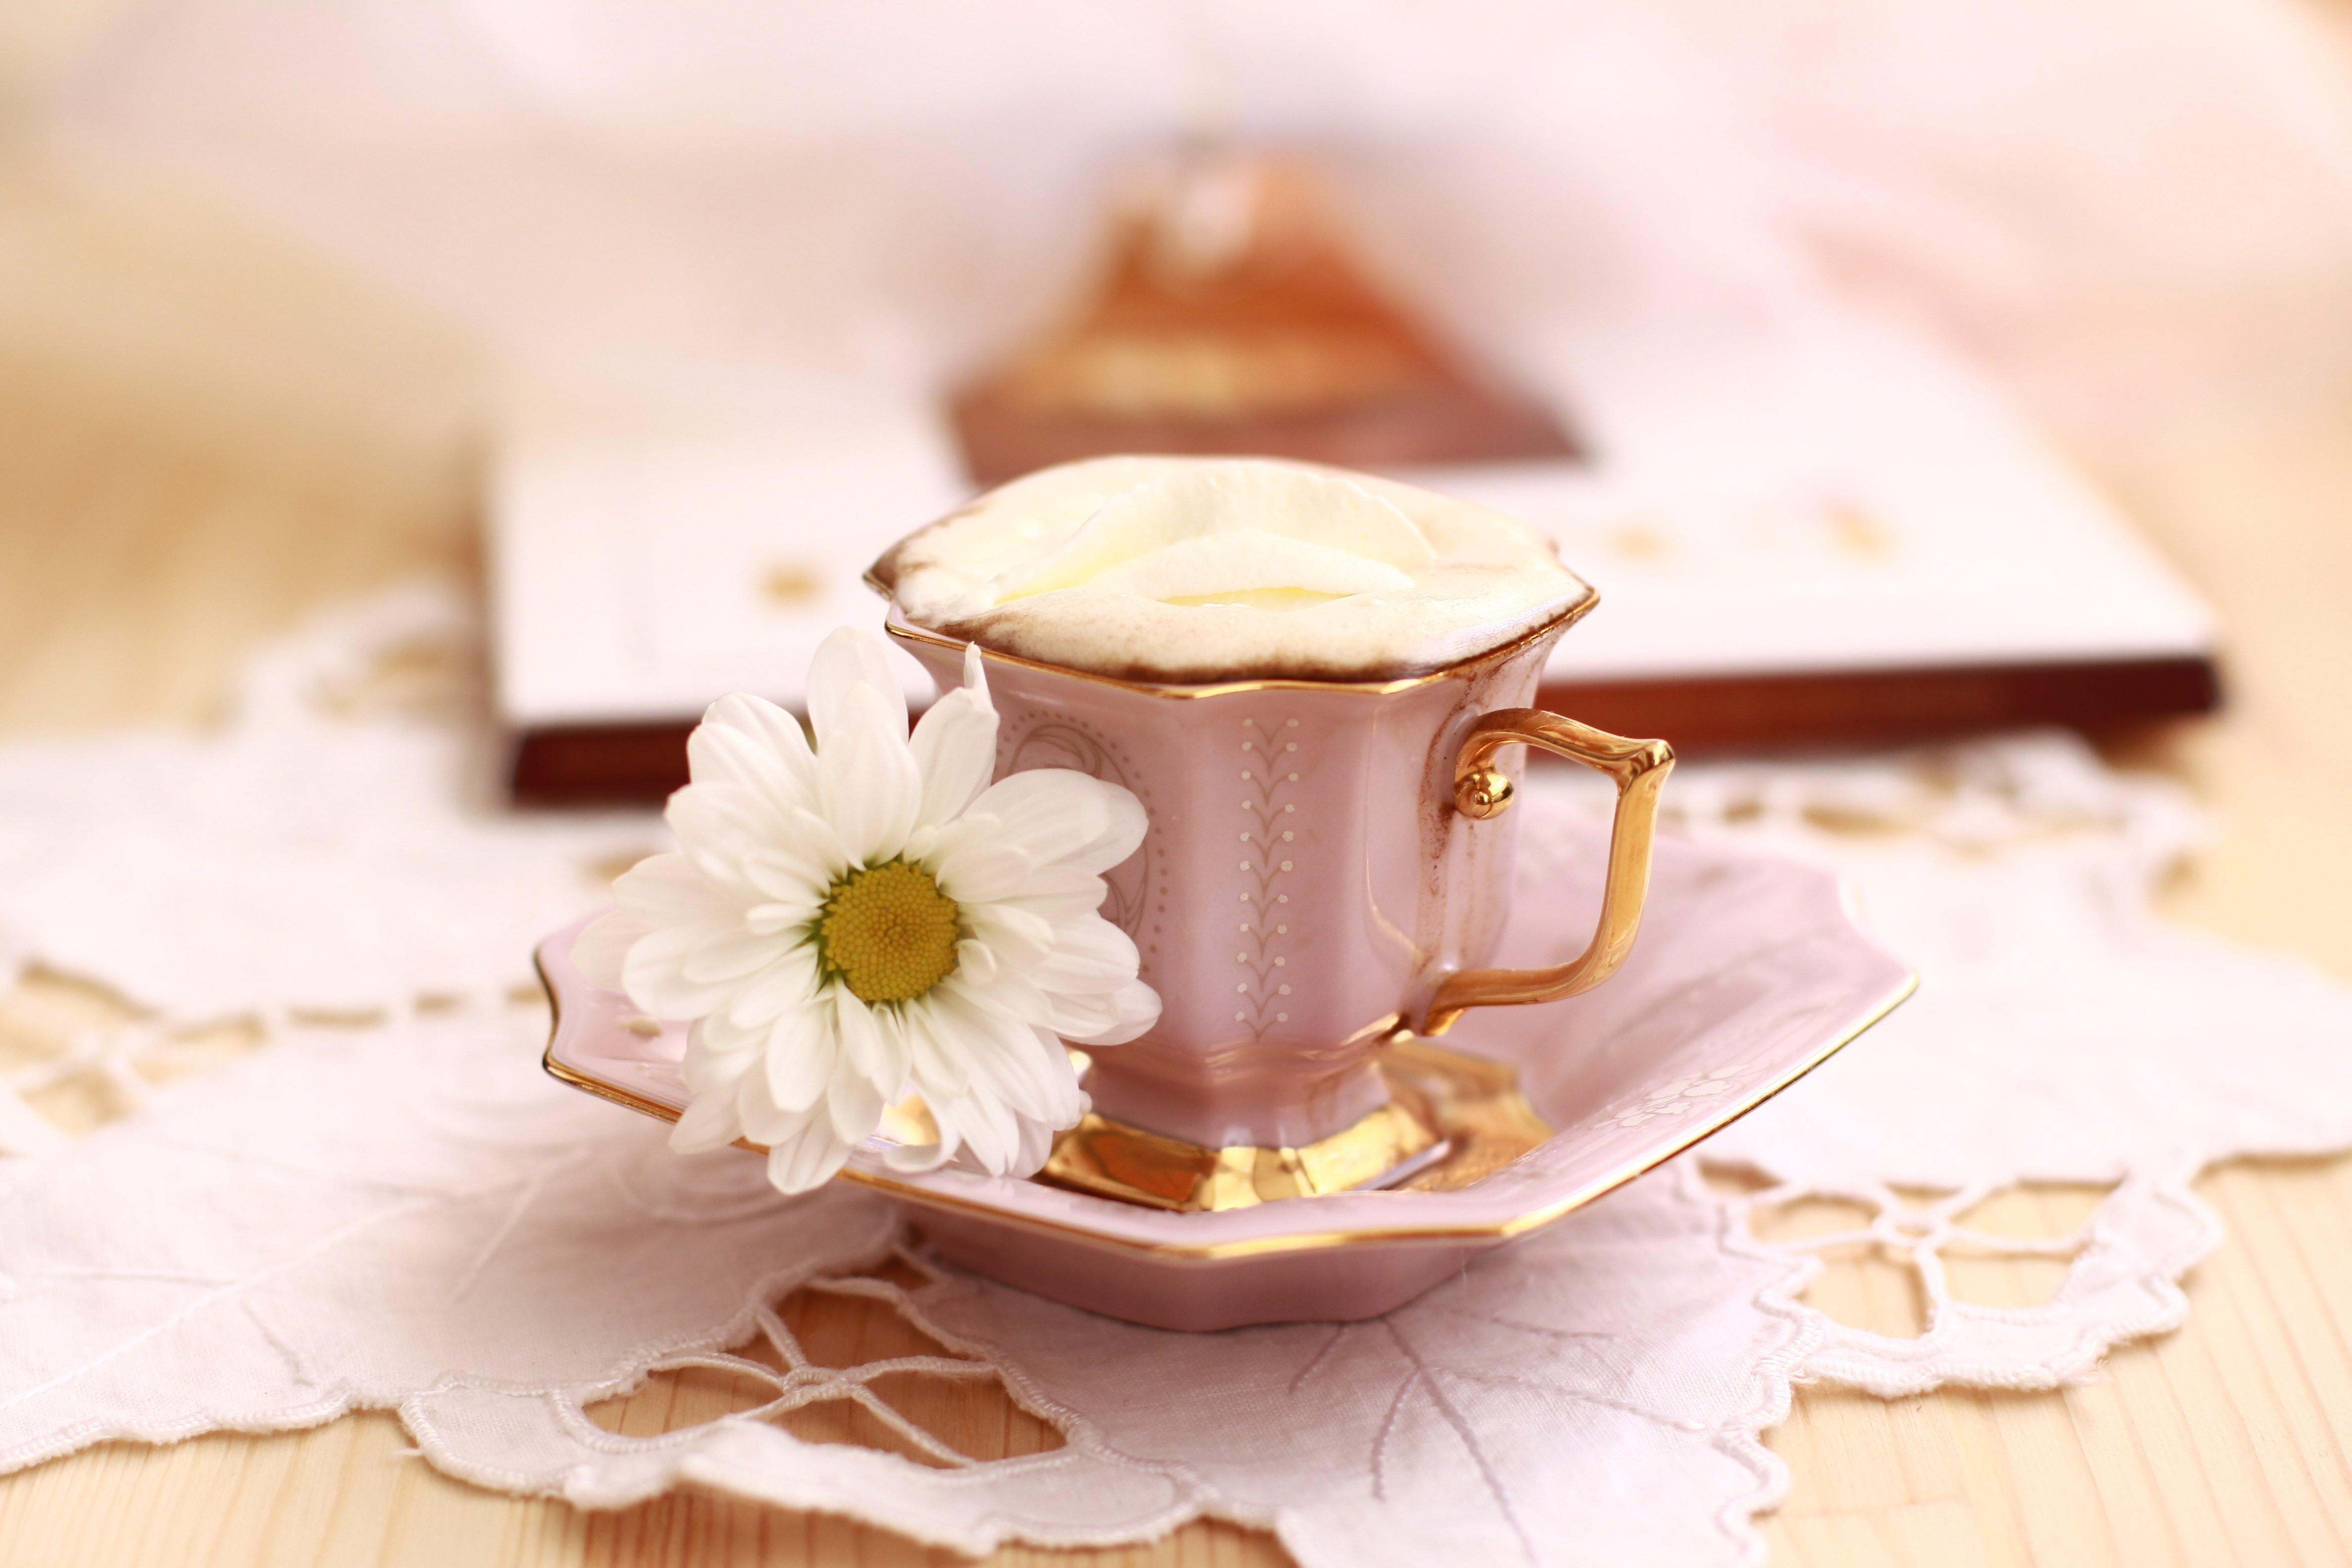 66043 Screensavers and Wallpapers Bouquet for phone. Download Flowers, Food, Summer, Coffee, Still Life, Cup, Bouquet, Morning, Basket, Breakfast pictures for free